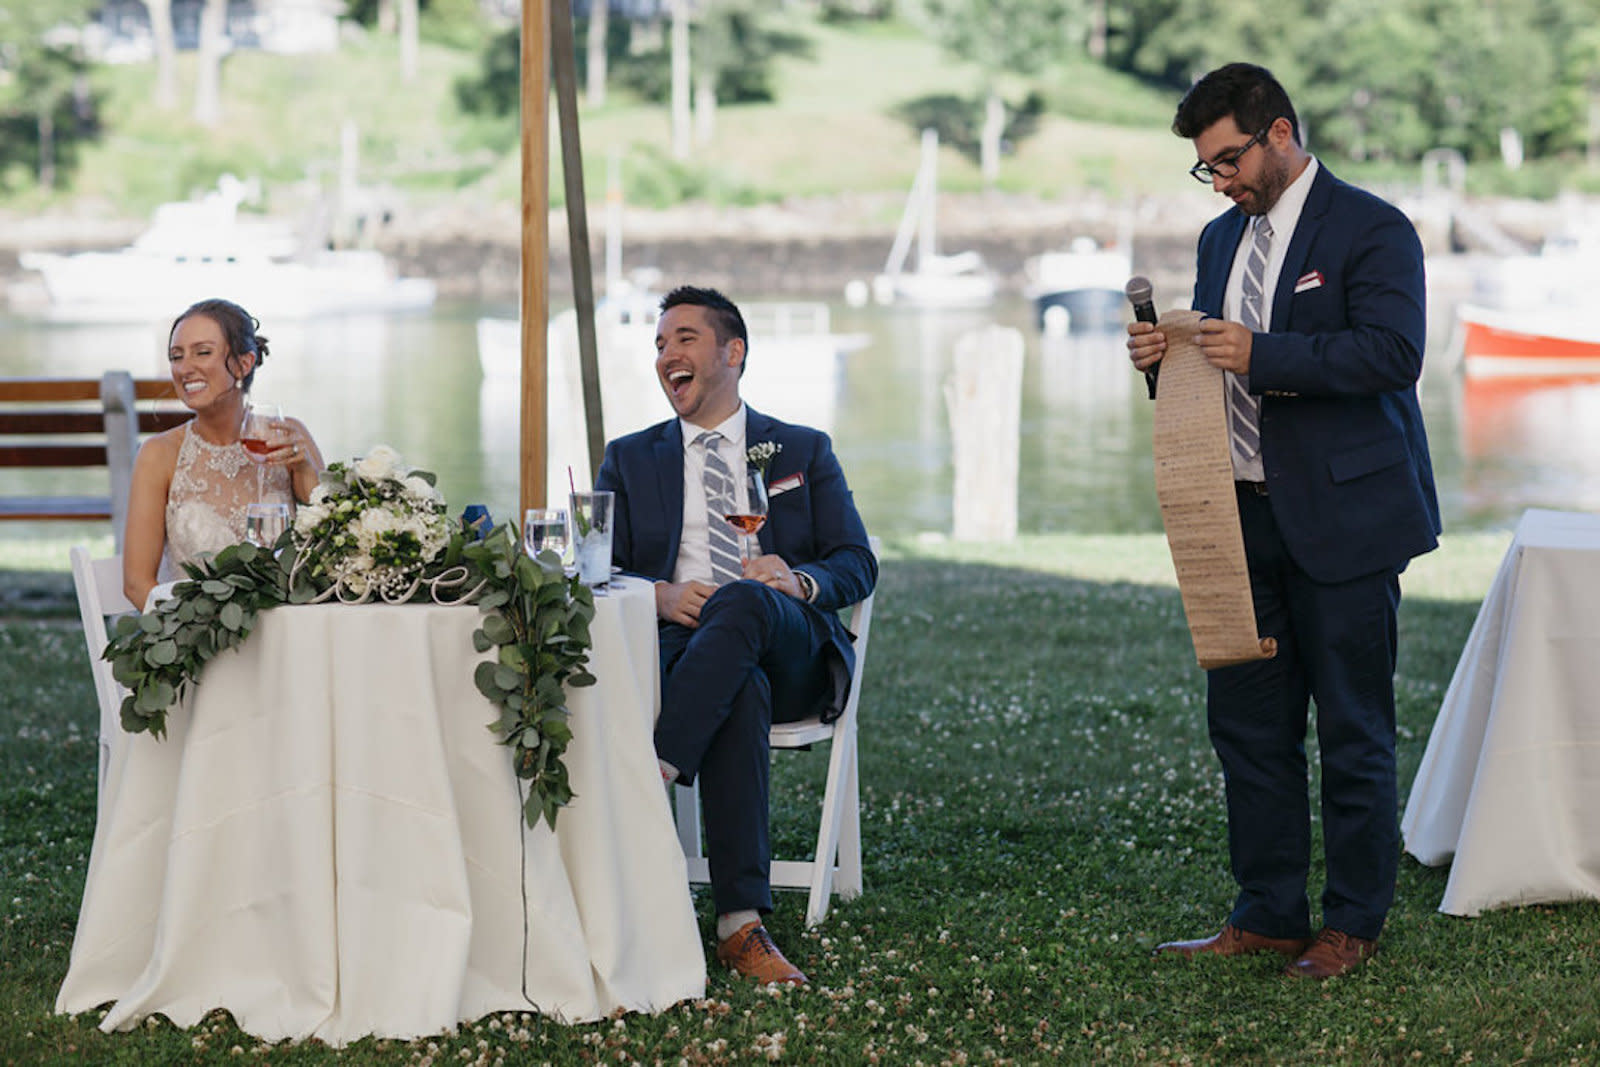 How To Give A Great Wedding Toast | Zola Expert Wedding Advice